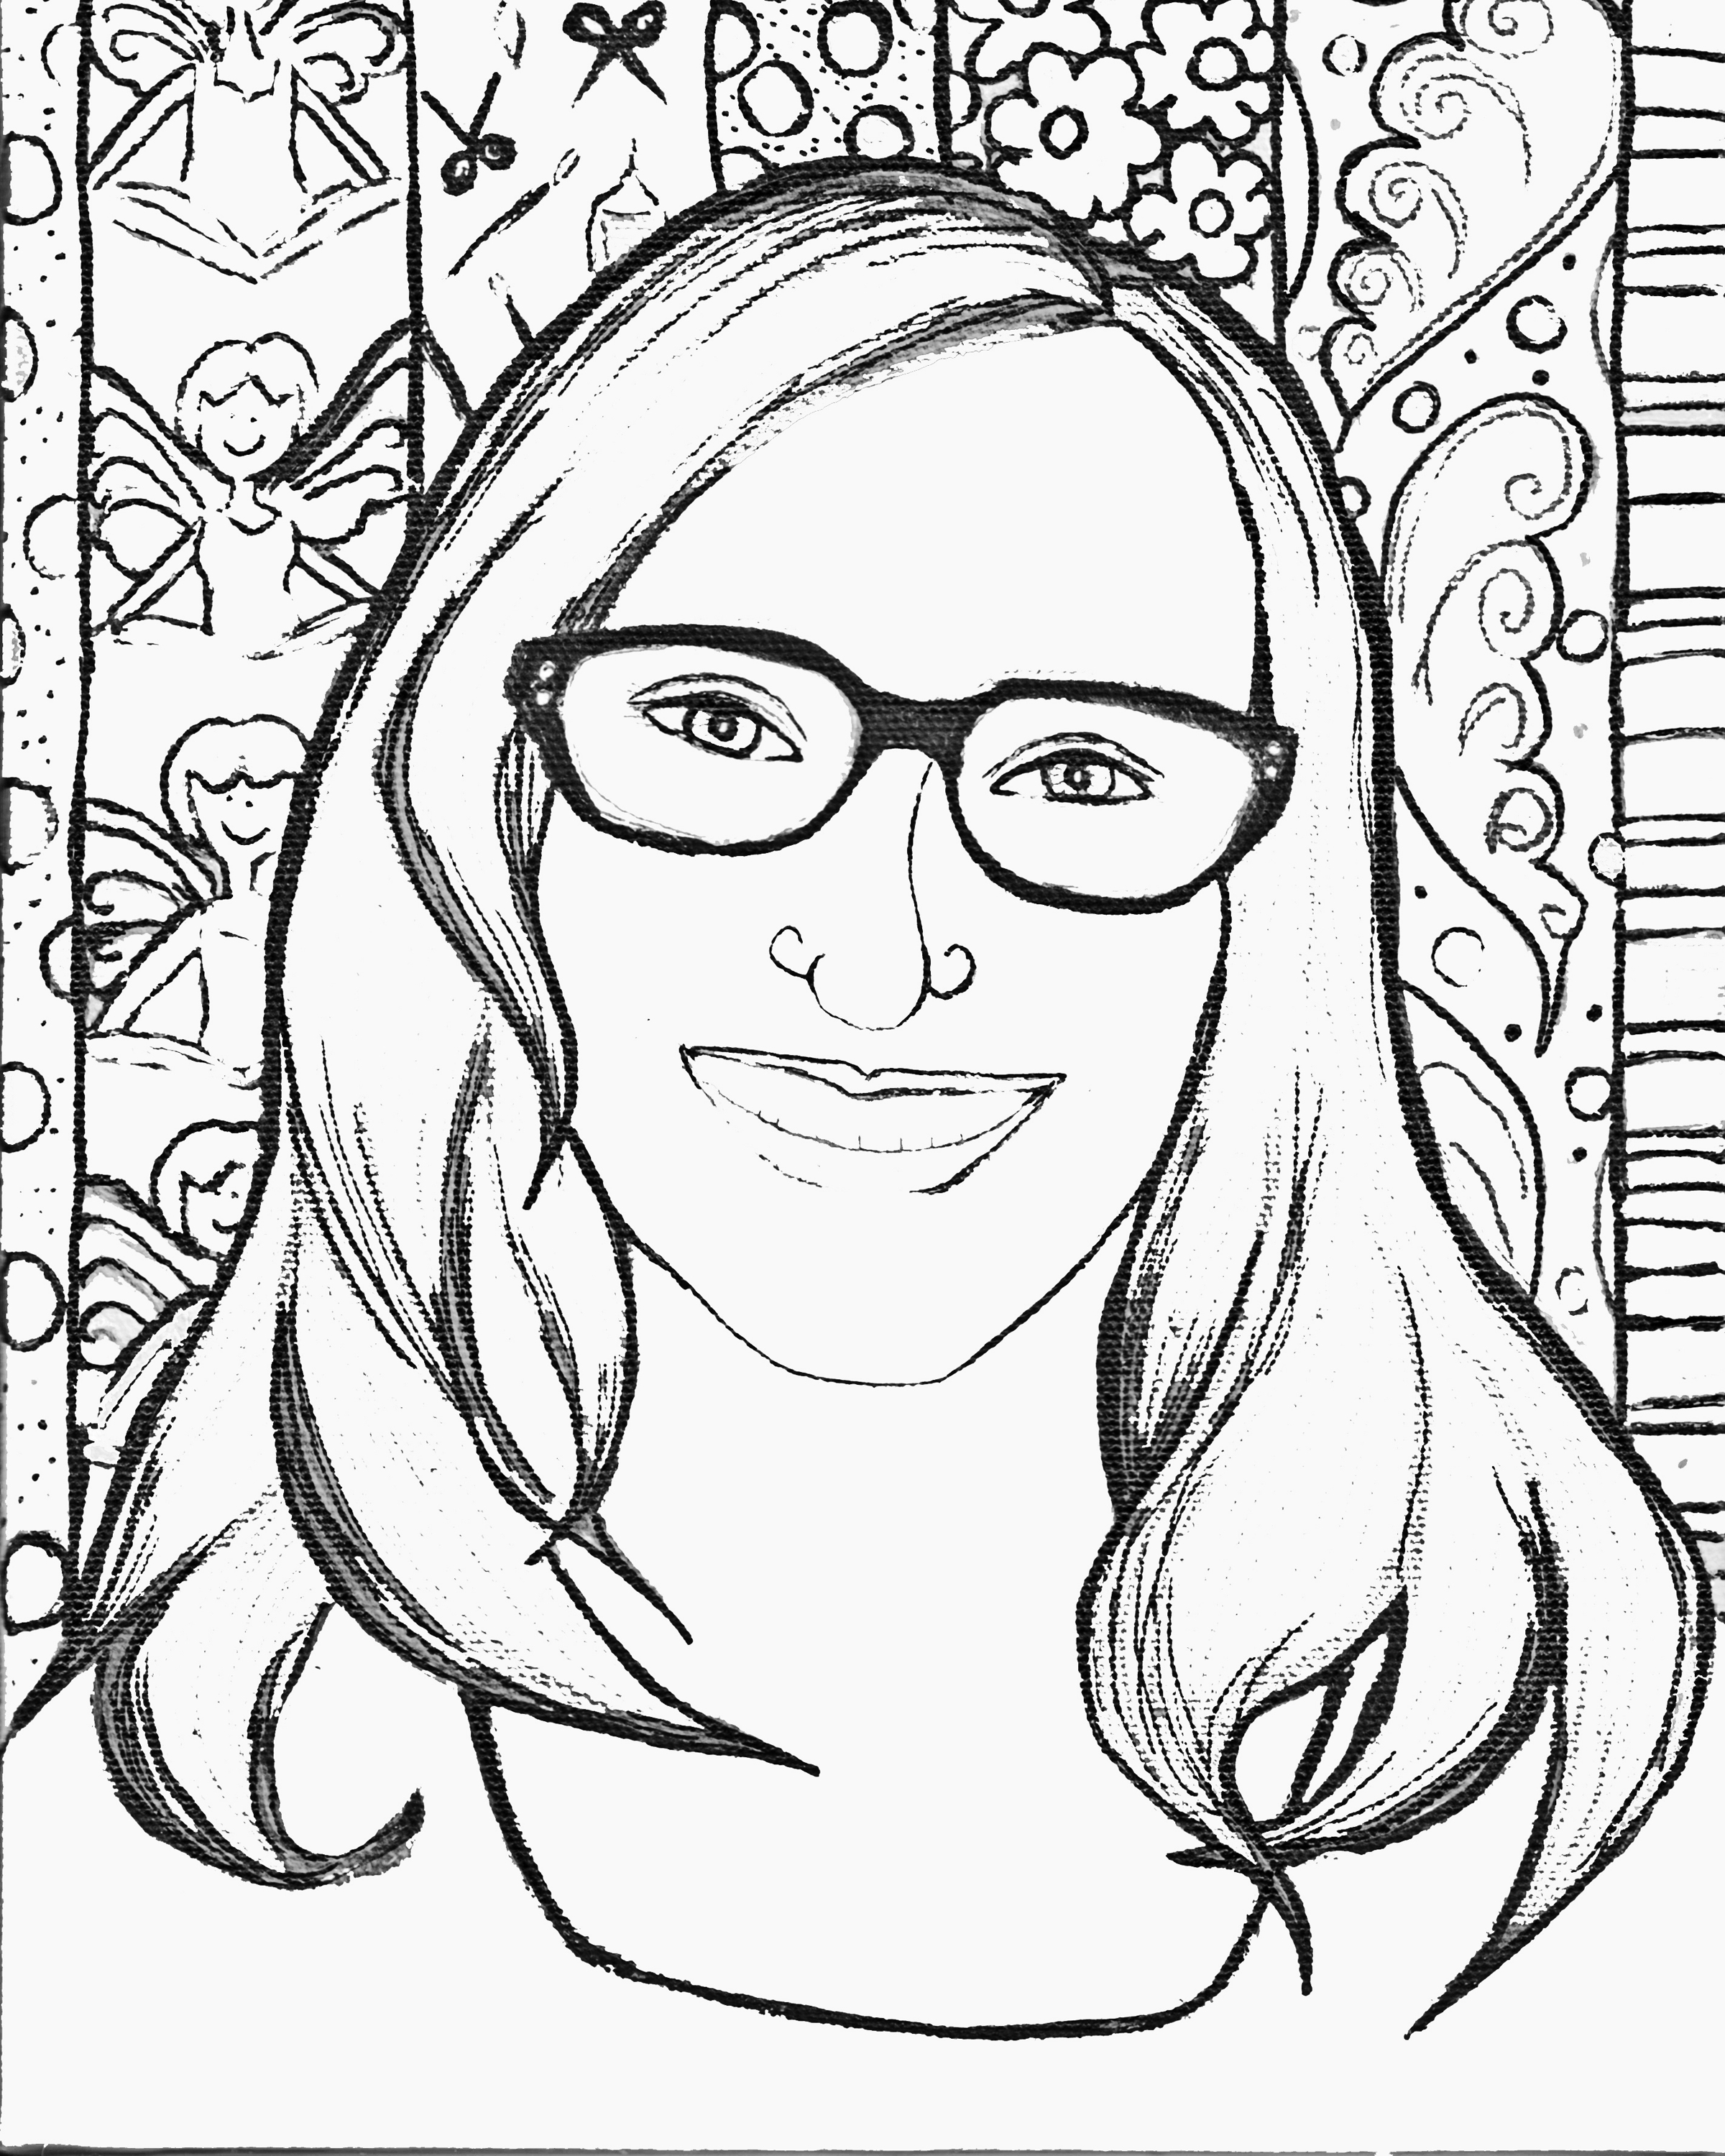 CB tammy coloring page_edited-2.jpg